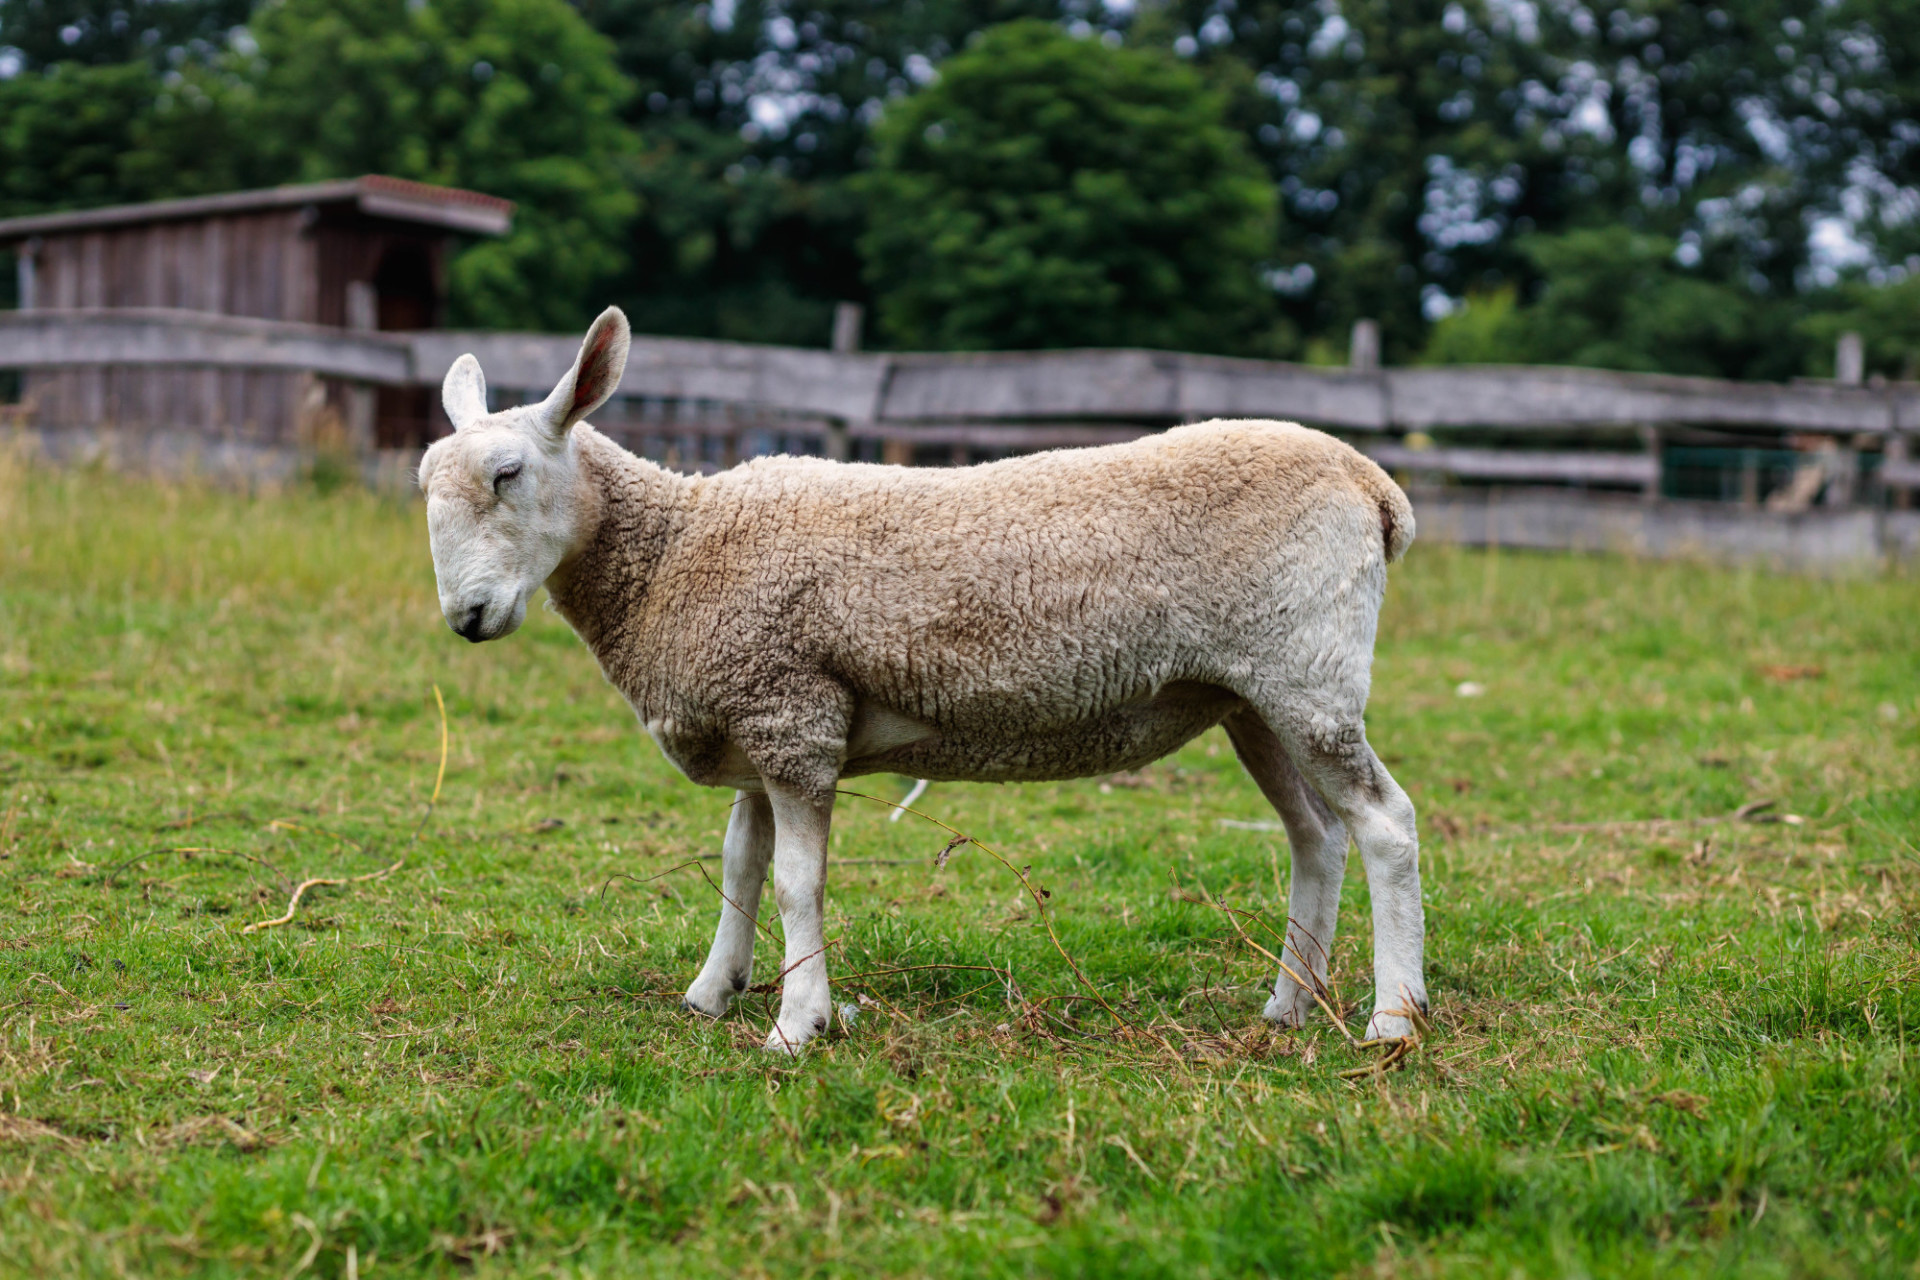 Cute sheep photographed from the side